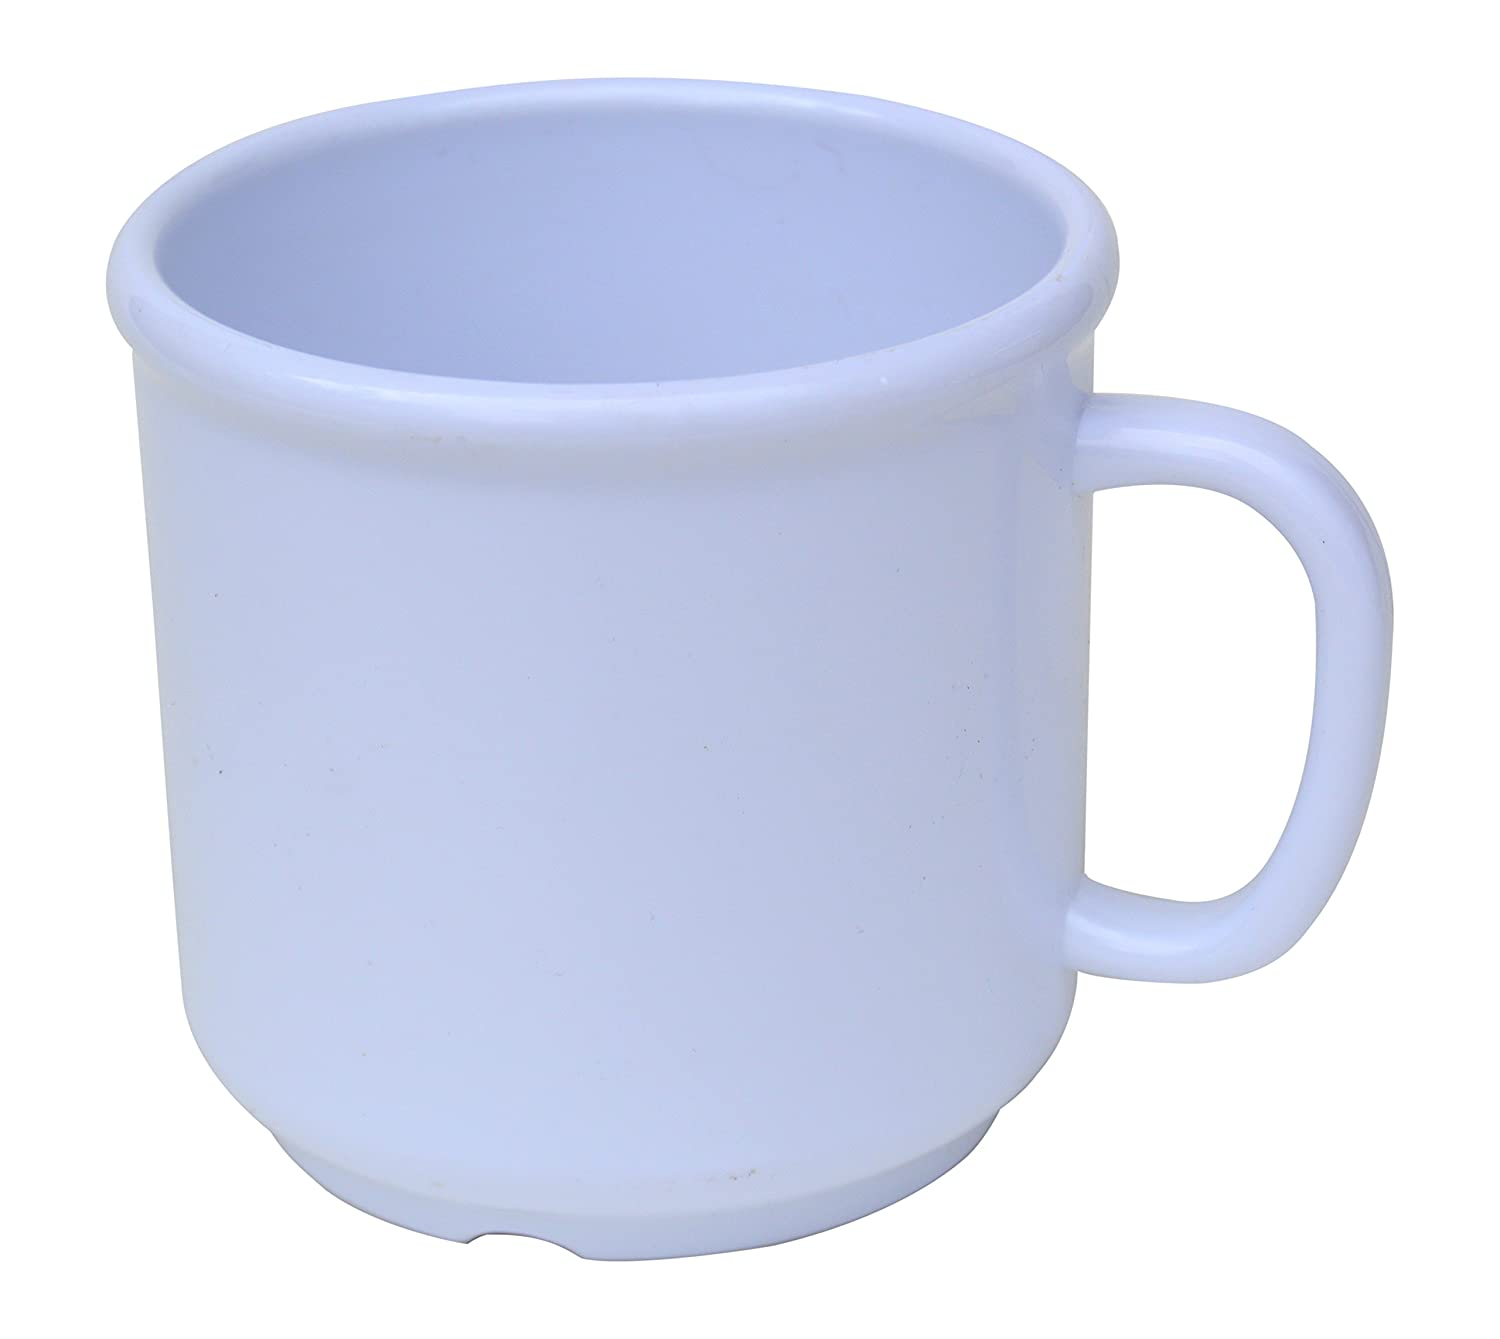 6 Pack Set - SAN Plastic - Hot Beverage Mug, White - 10 Ounce